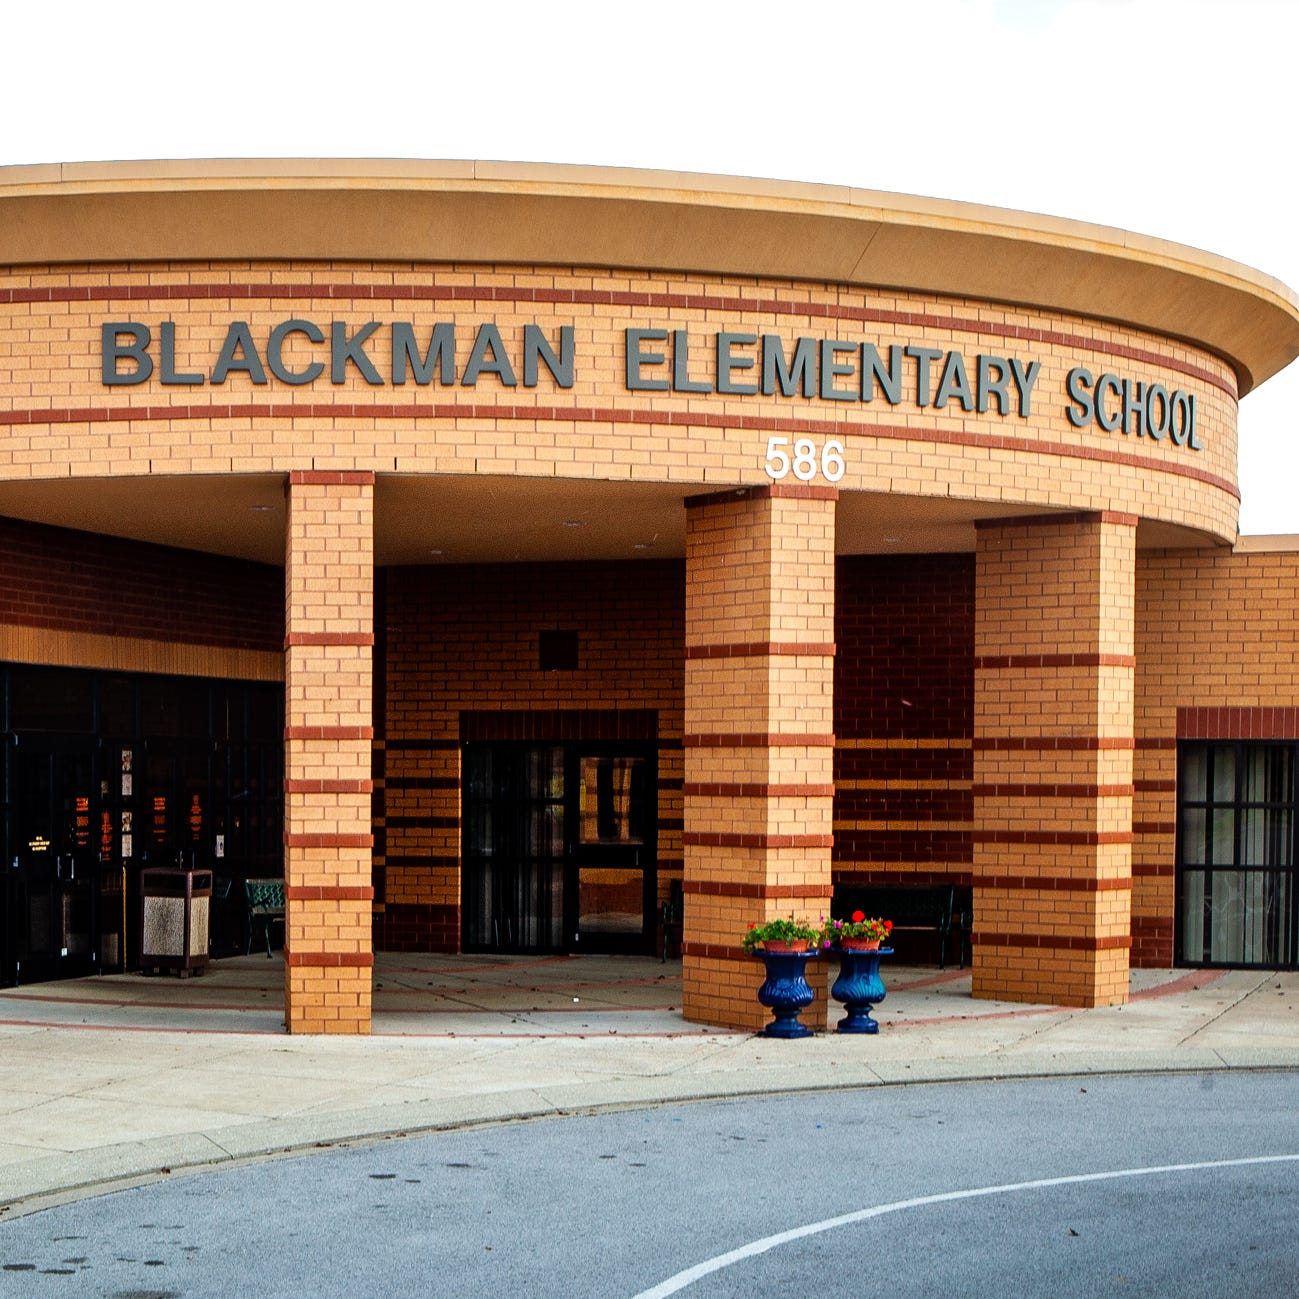 Blackman Elementary School principal under investigation over dismissal procedure during manhunt